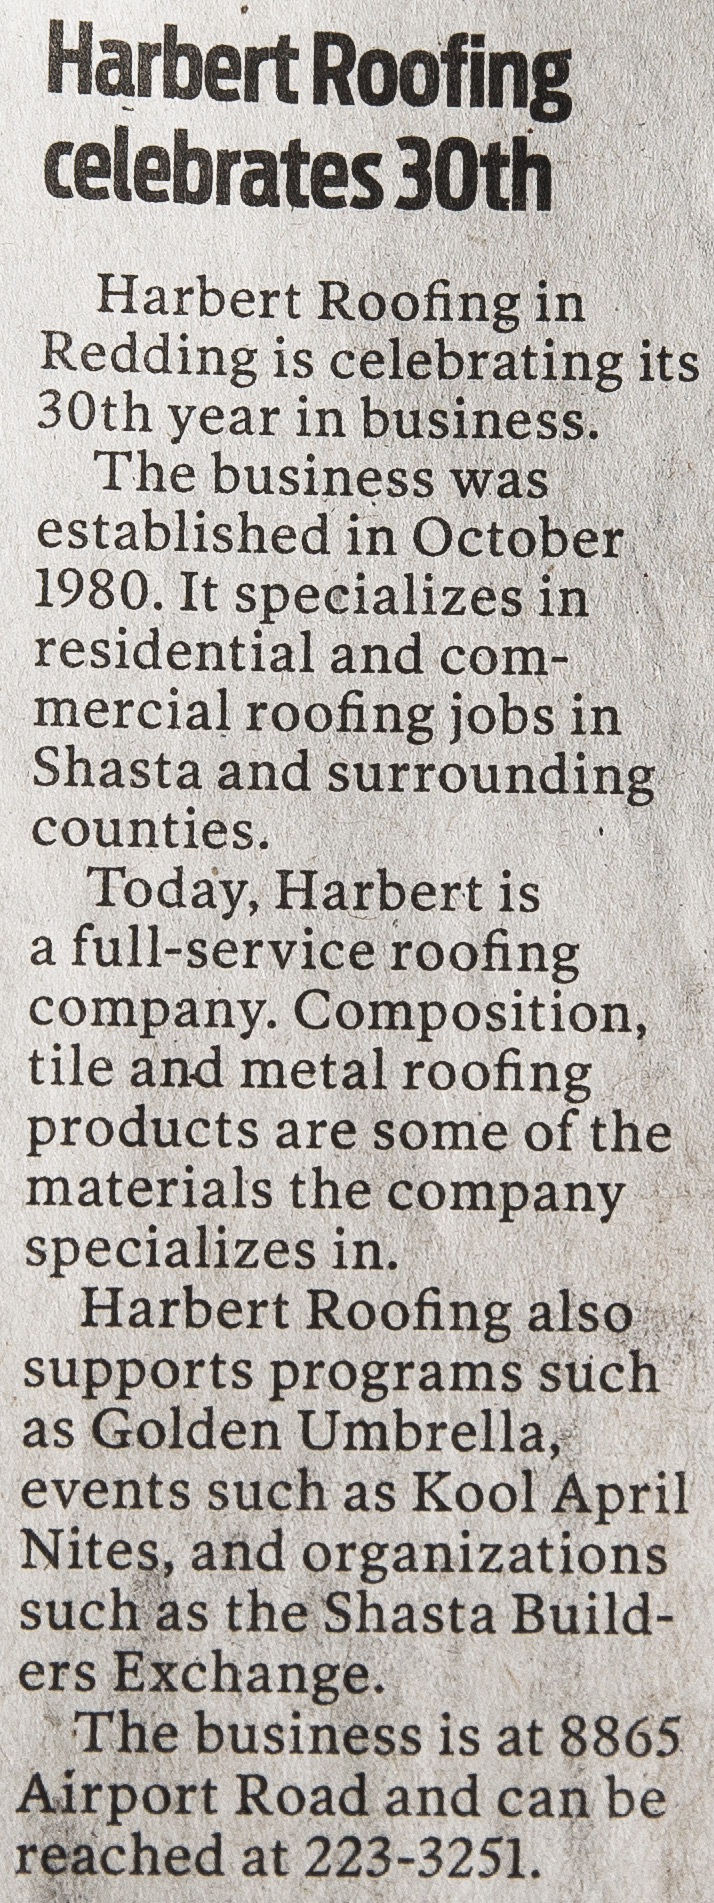 Harbert Roofing in Redding is celebrating its 30th year in business. - The business was established in October 1980. It specializes in residential and commercial roofing jobs in Shasta and surrounding counties.Today, Harbert is a full-service roofing company. Composition, tile and metal roofing products are some of the materials the company specializes in.Harbert Roofing also supports programs such as Golden Umbrella, events such as Kool April Nites, and organizations such as the Shasta Builders Exchange.The business is at 8865 Airport Road and can be reached at 223-3251.Published October 7, 2010 in the Redding Record Searchlight